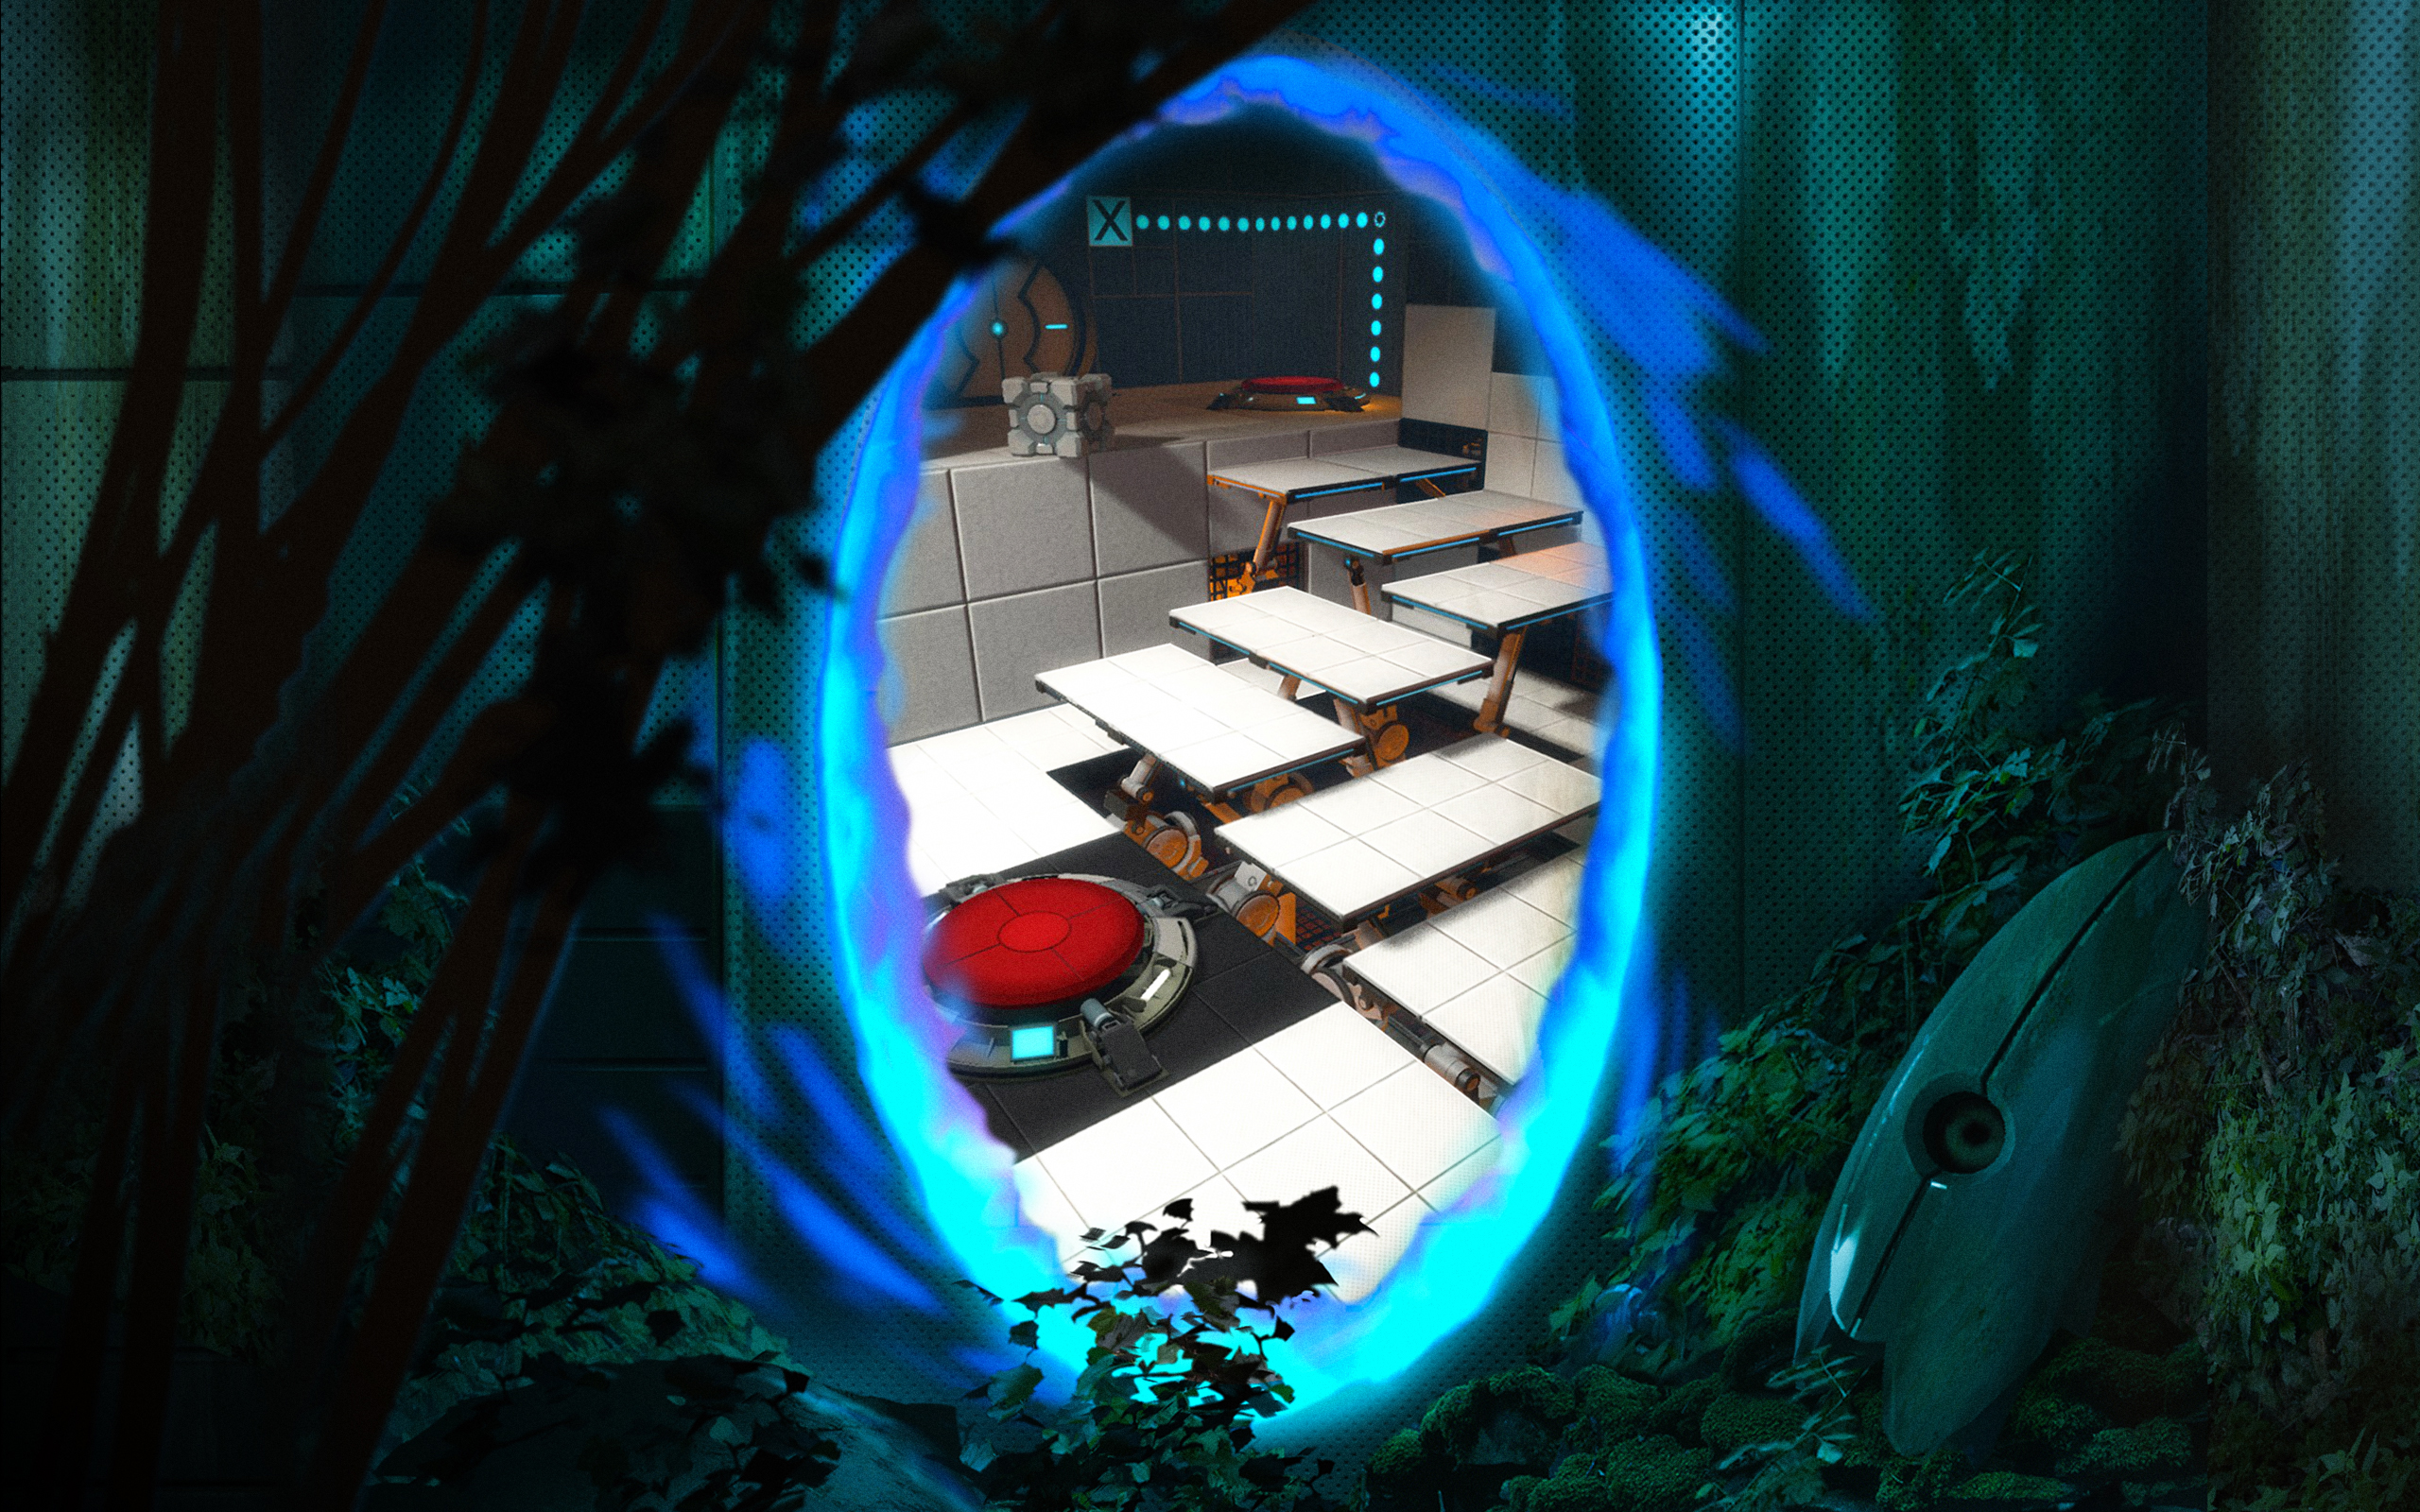 portal 2 game hd wallpapers new collections all hd wallpapers. Black Bedroom Furniture Sets. Home Design Ideas